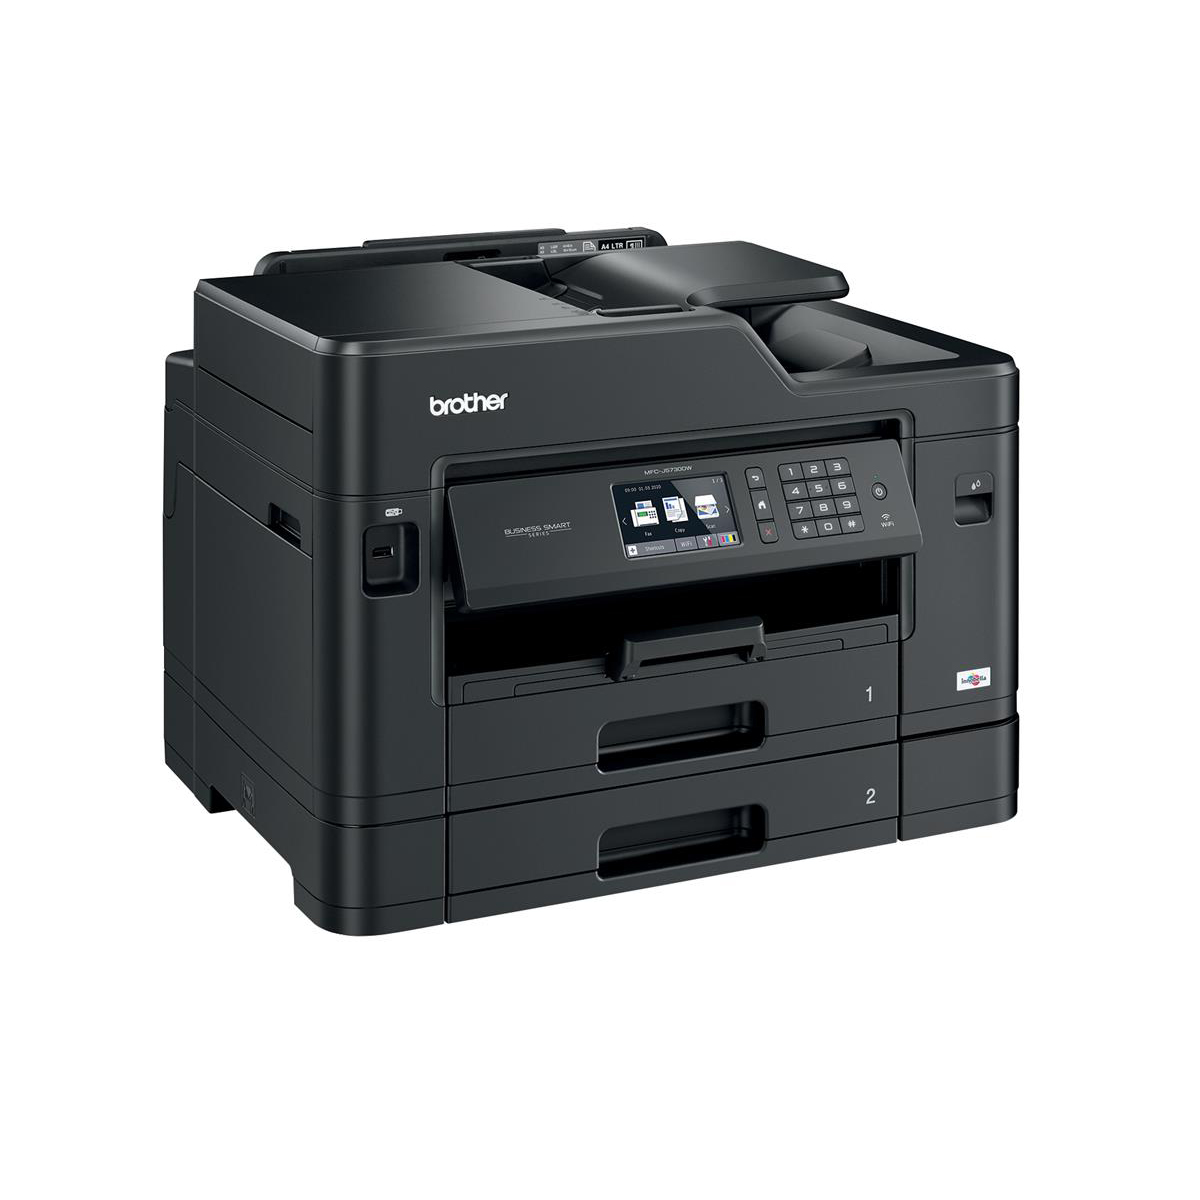 Brother Colour Multifunction Inkjet A3 Printer Ref MFC-J5730DW